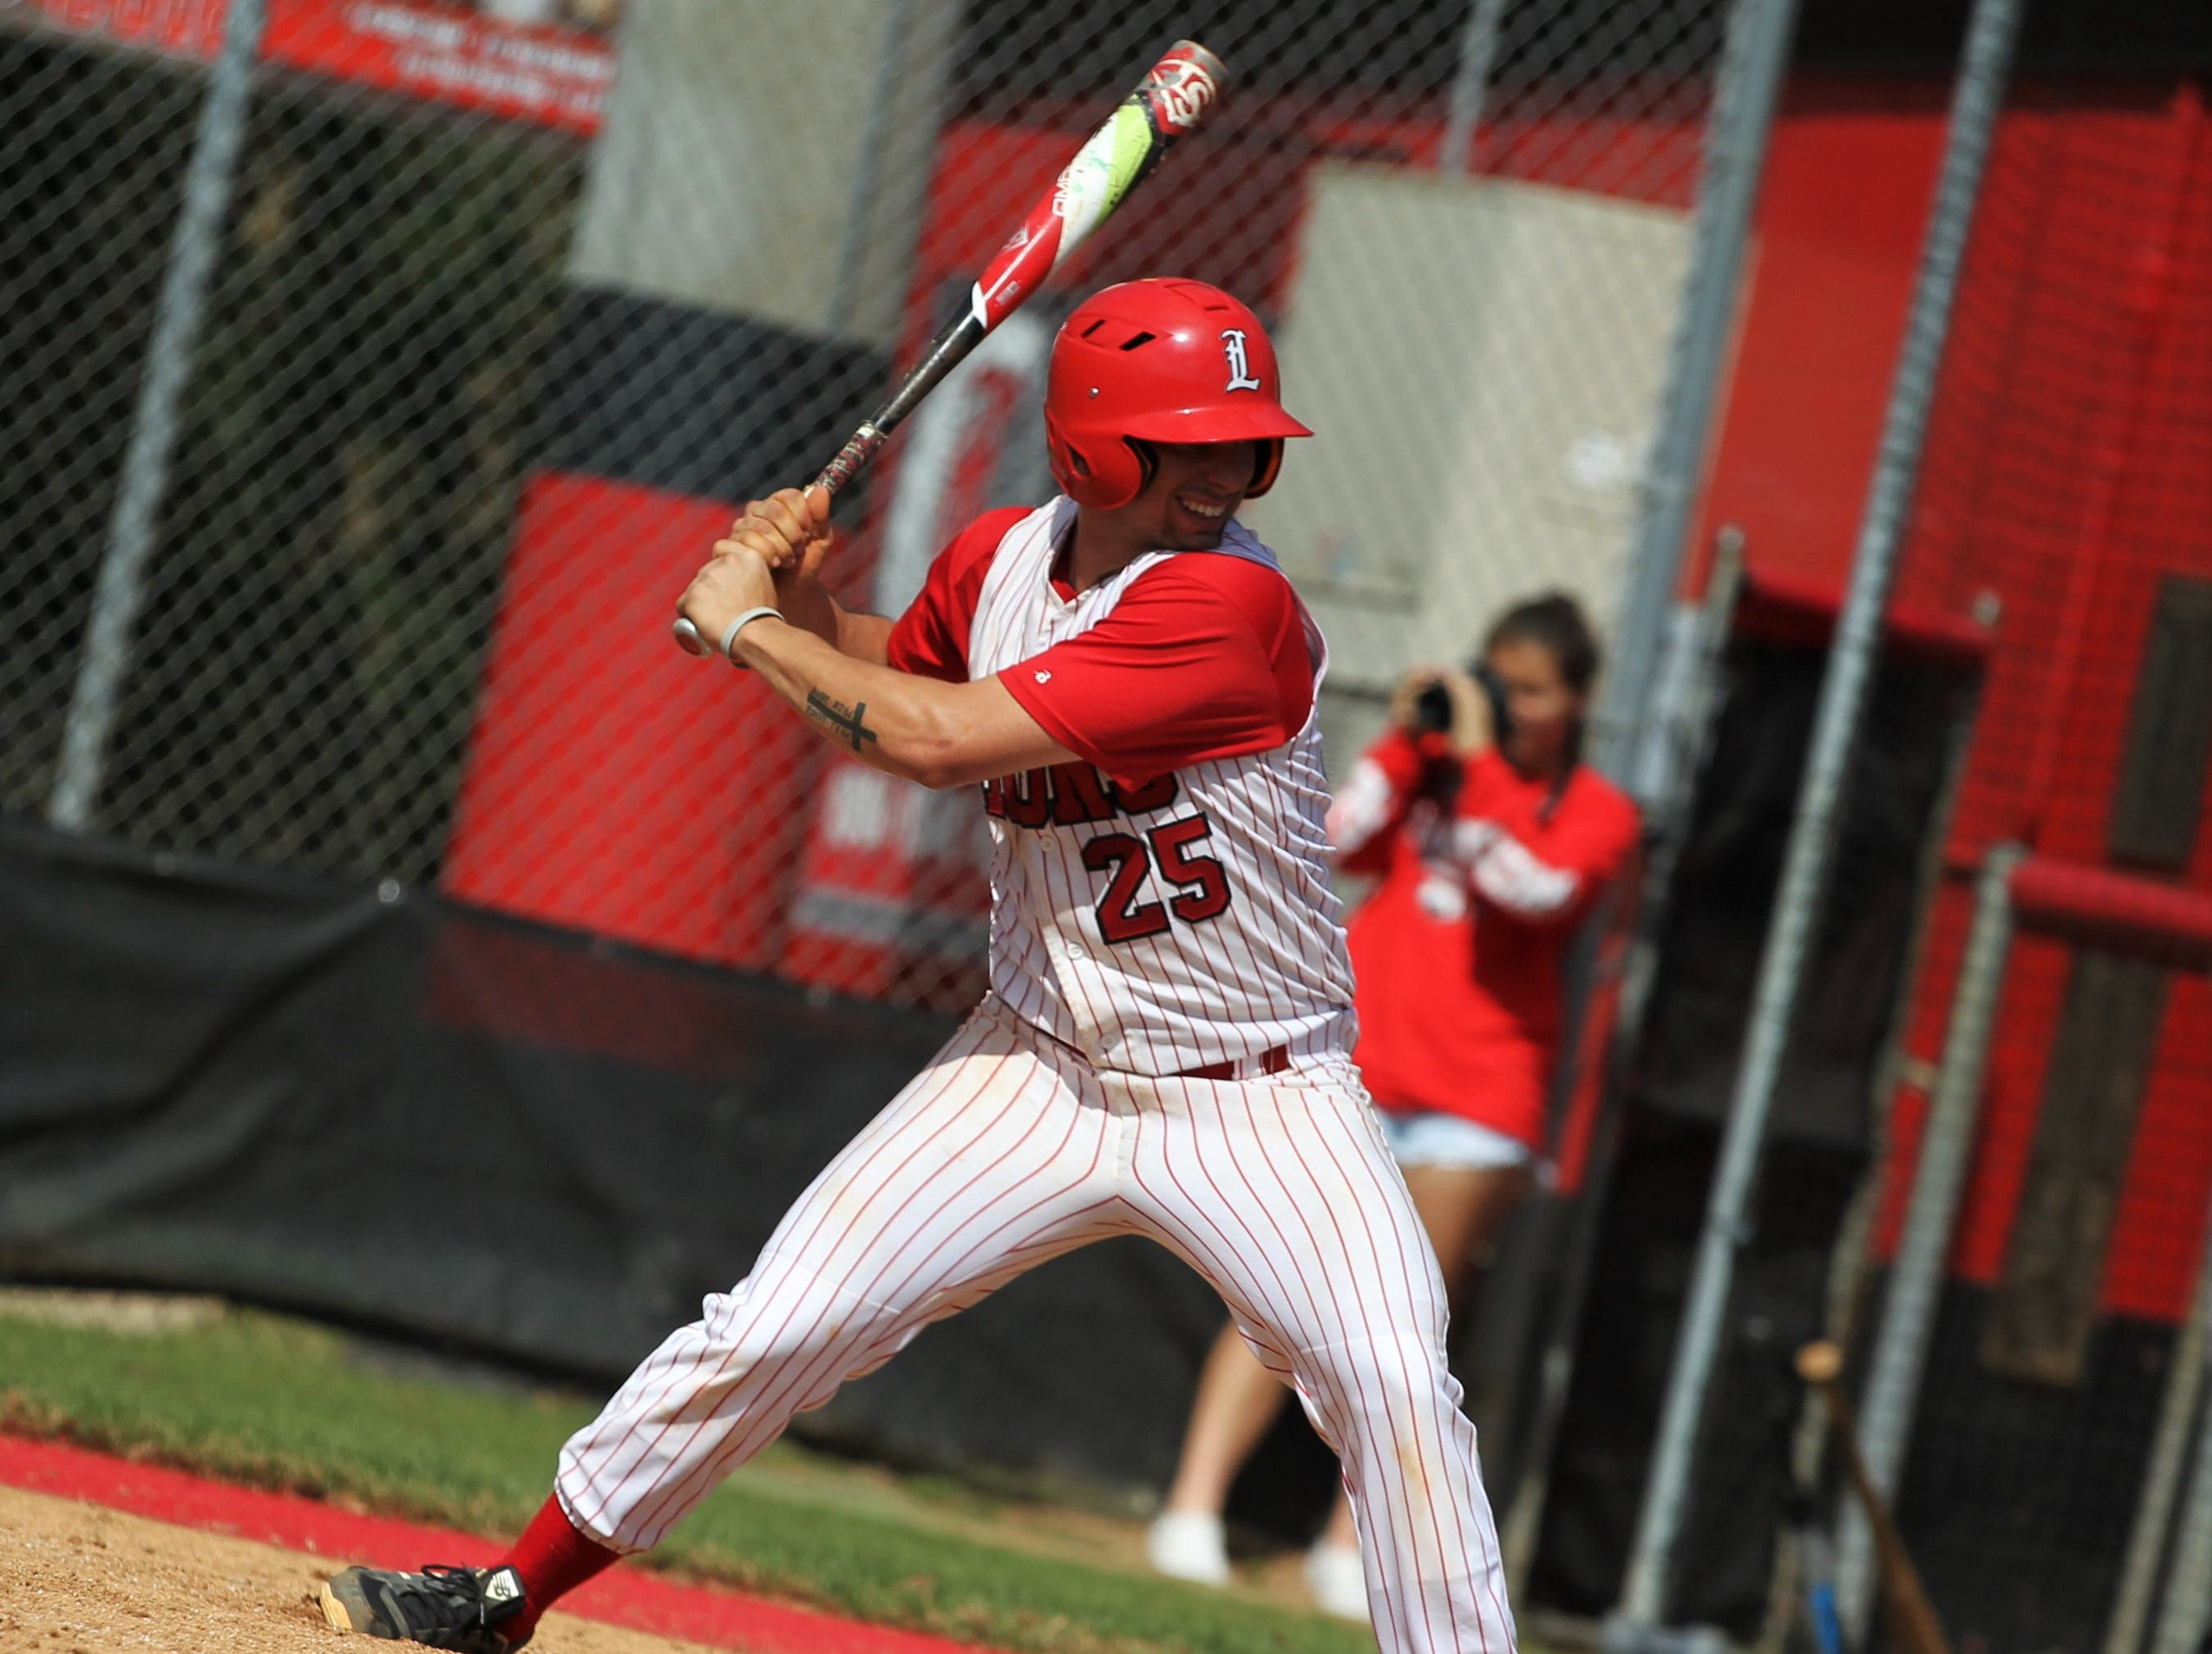 Leon senior Tyler Borges bats as NFC plays at Leon during a preseason game in February.